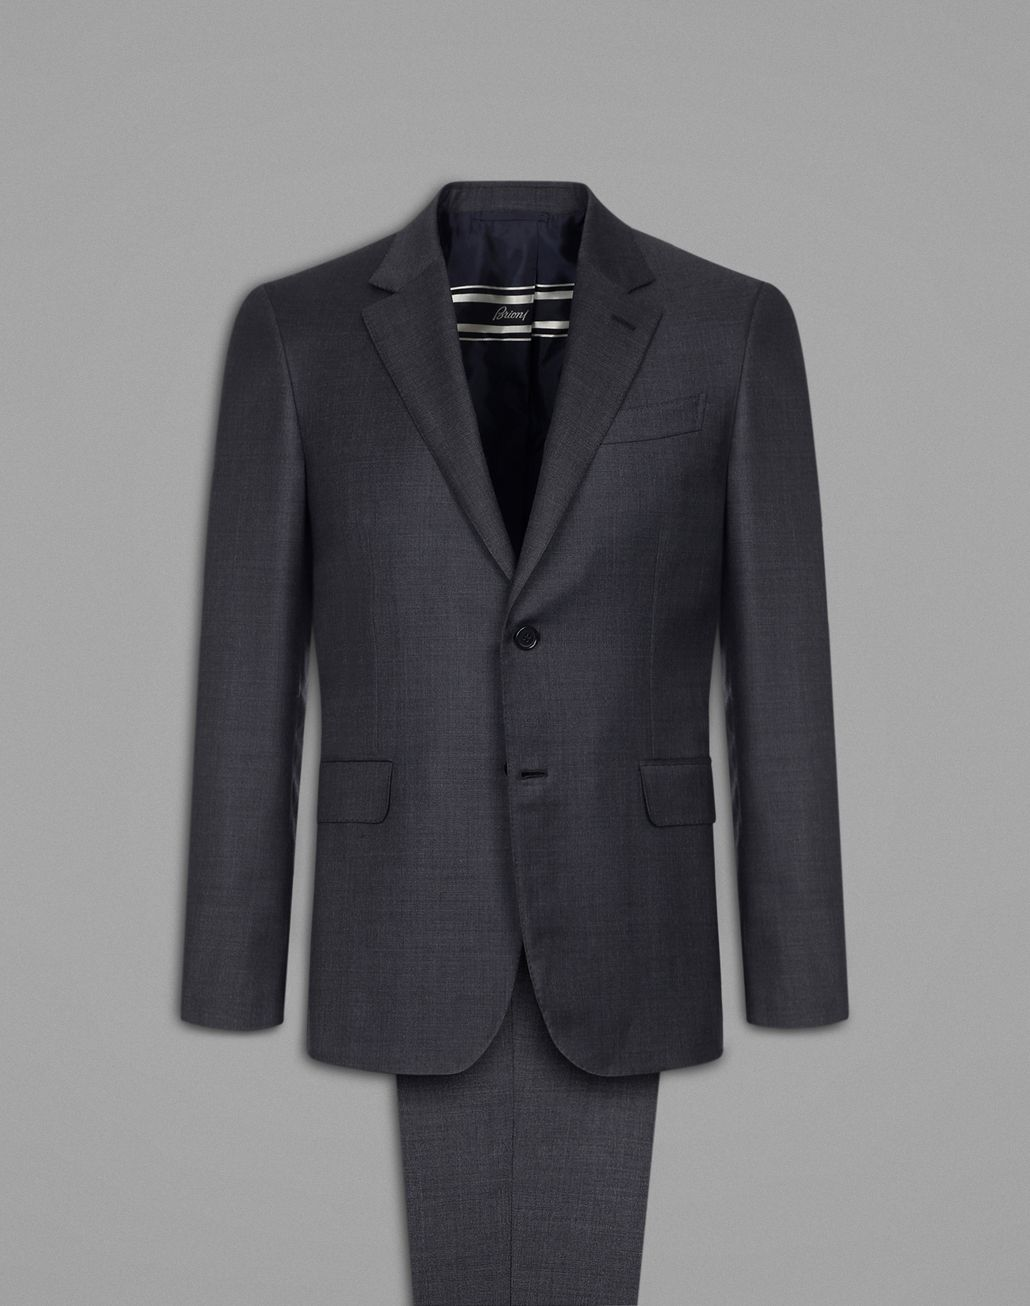 BRIONI Grey Primo Suit Suits & Jackets Man f